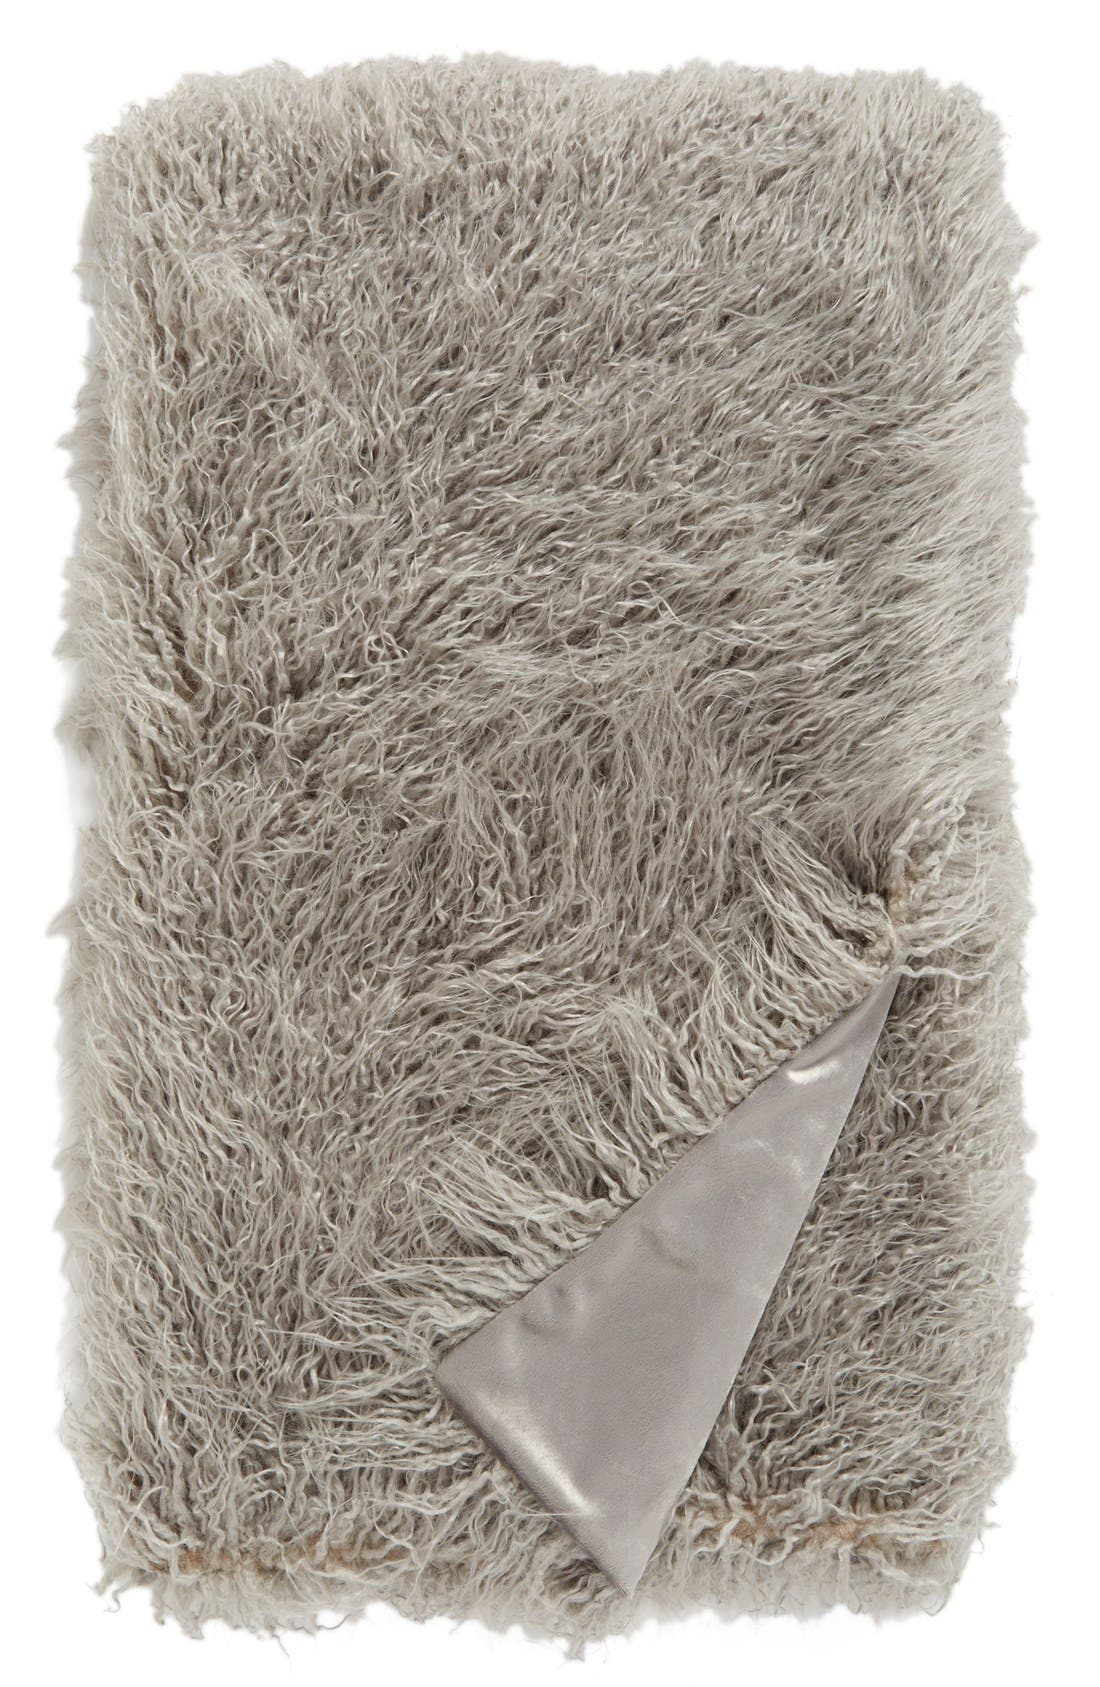 NORDSTROM AT HOME, Mongolian Faux Fur Throw, Main thumbnail 1, color, 020